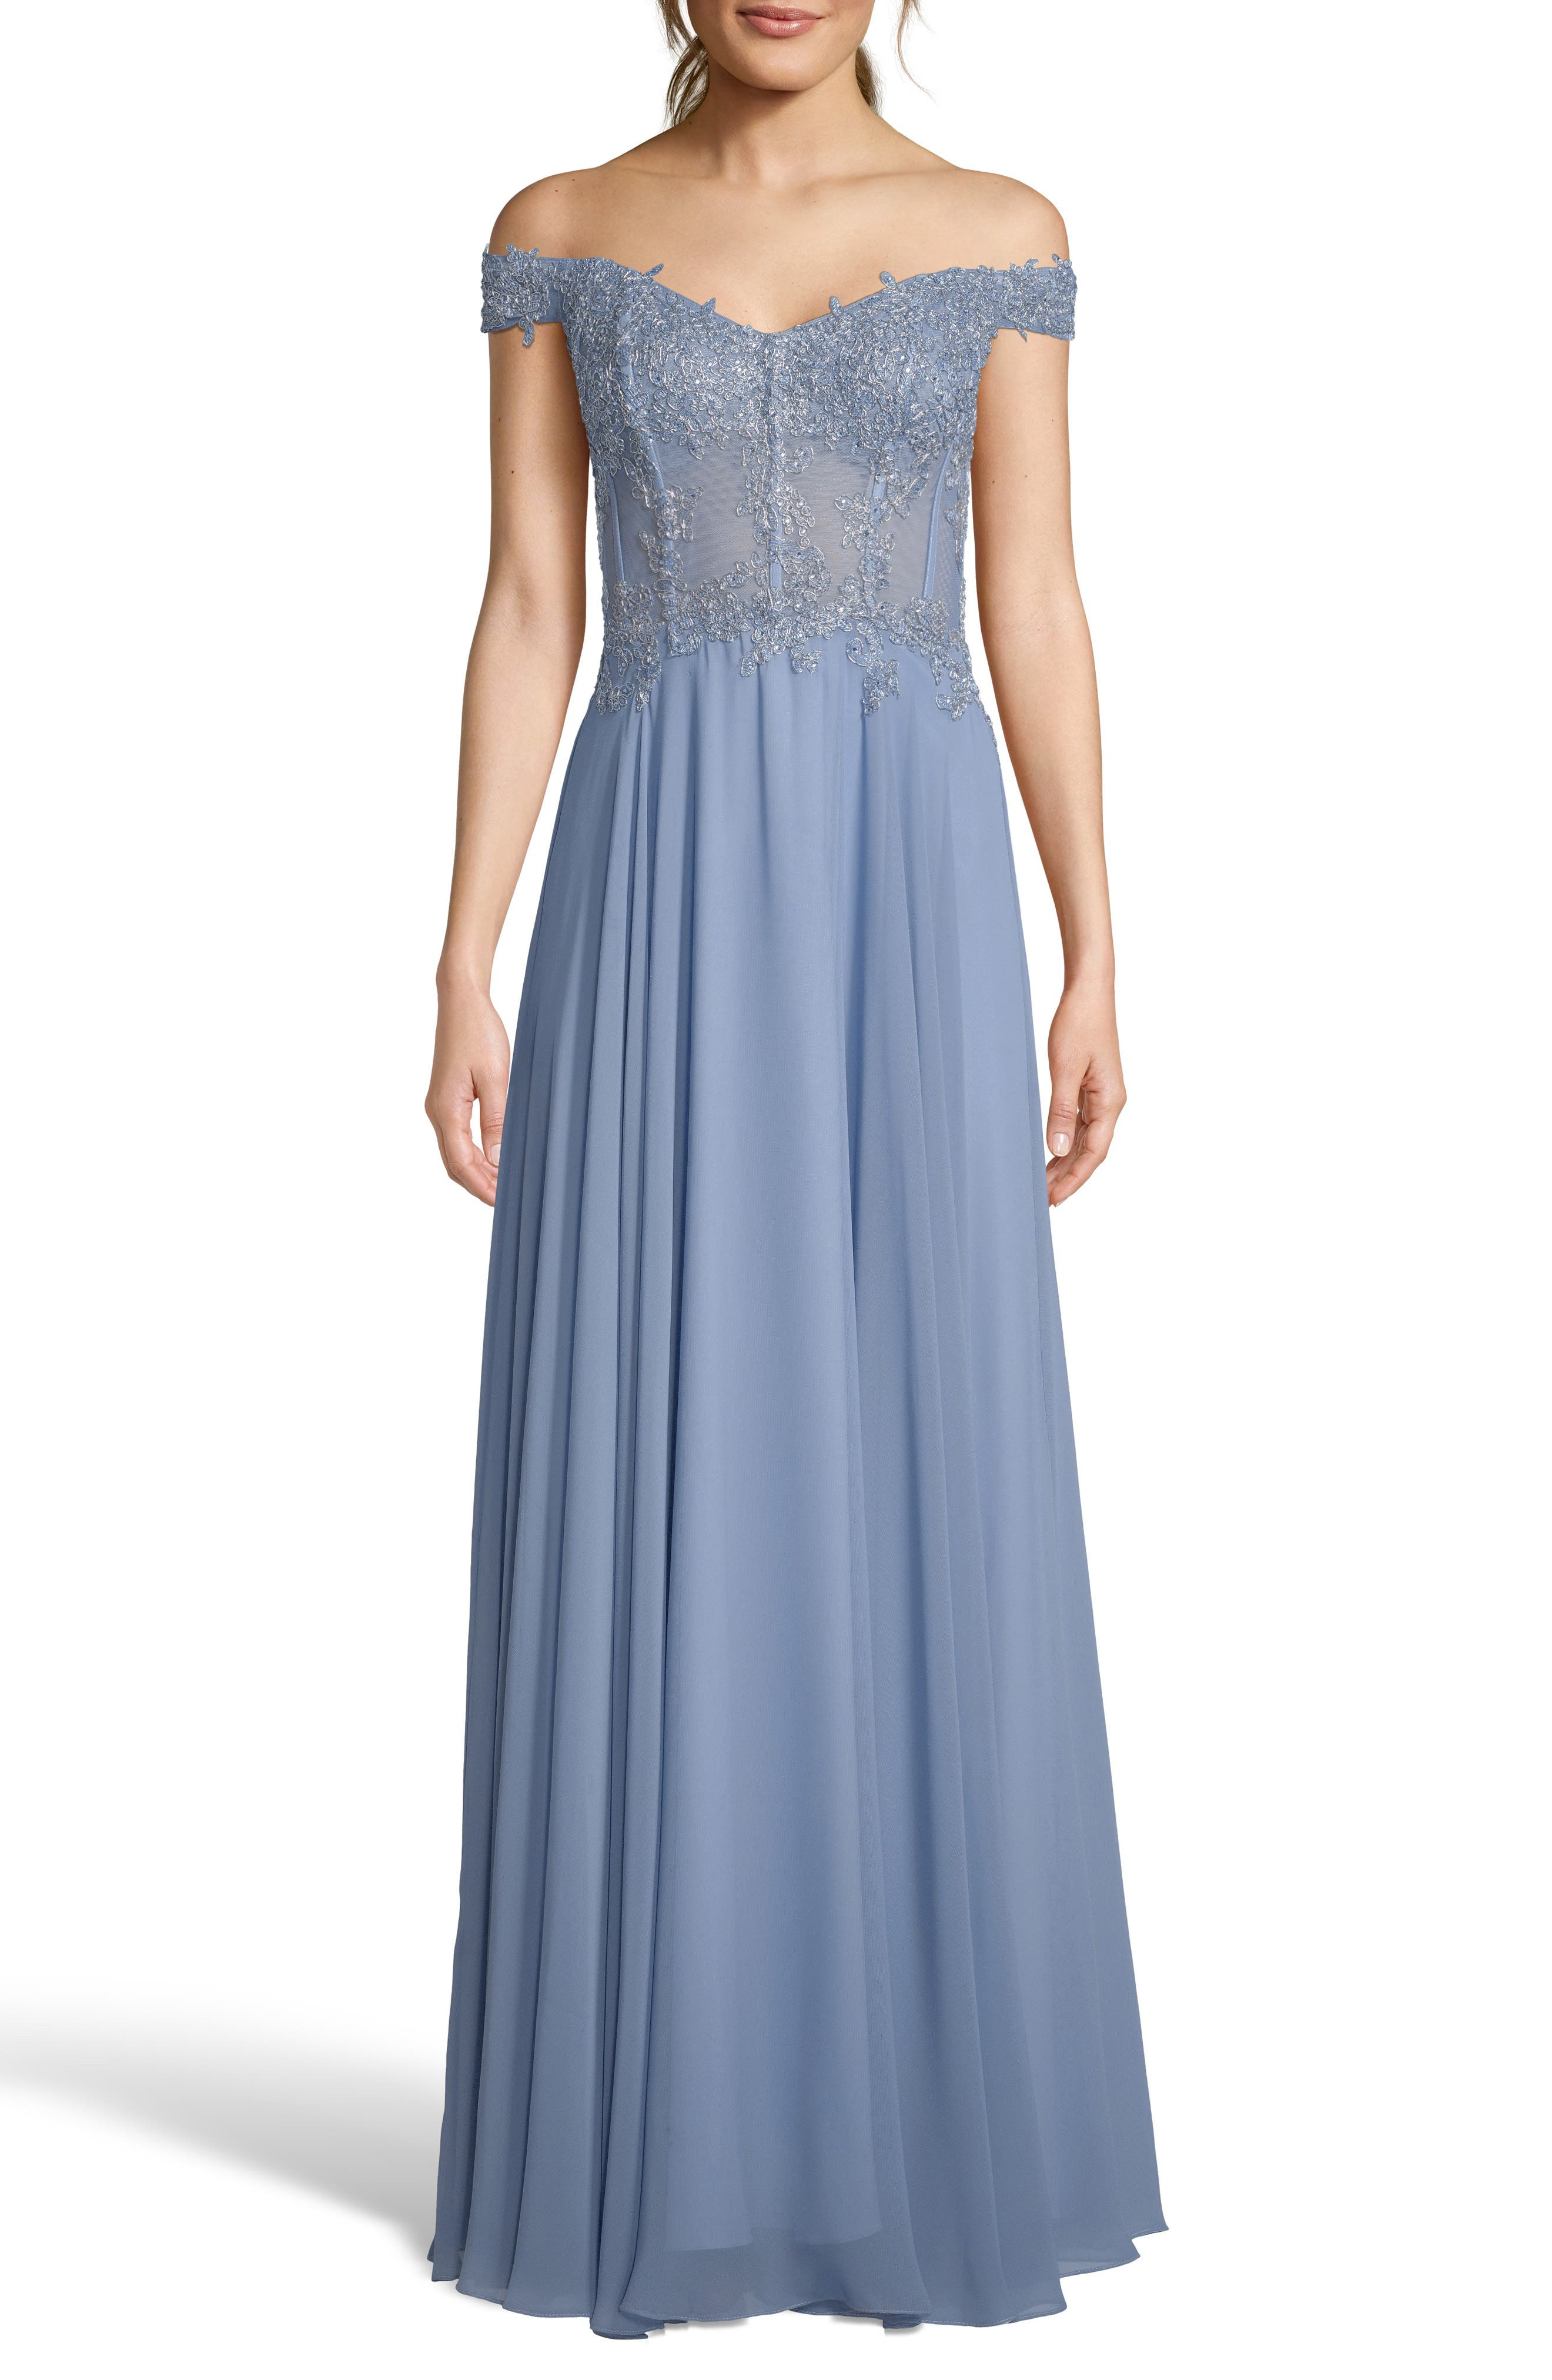 Galleria Mall Prom Dresses Pink and Blue